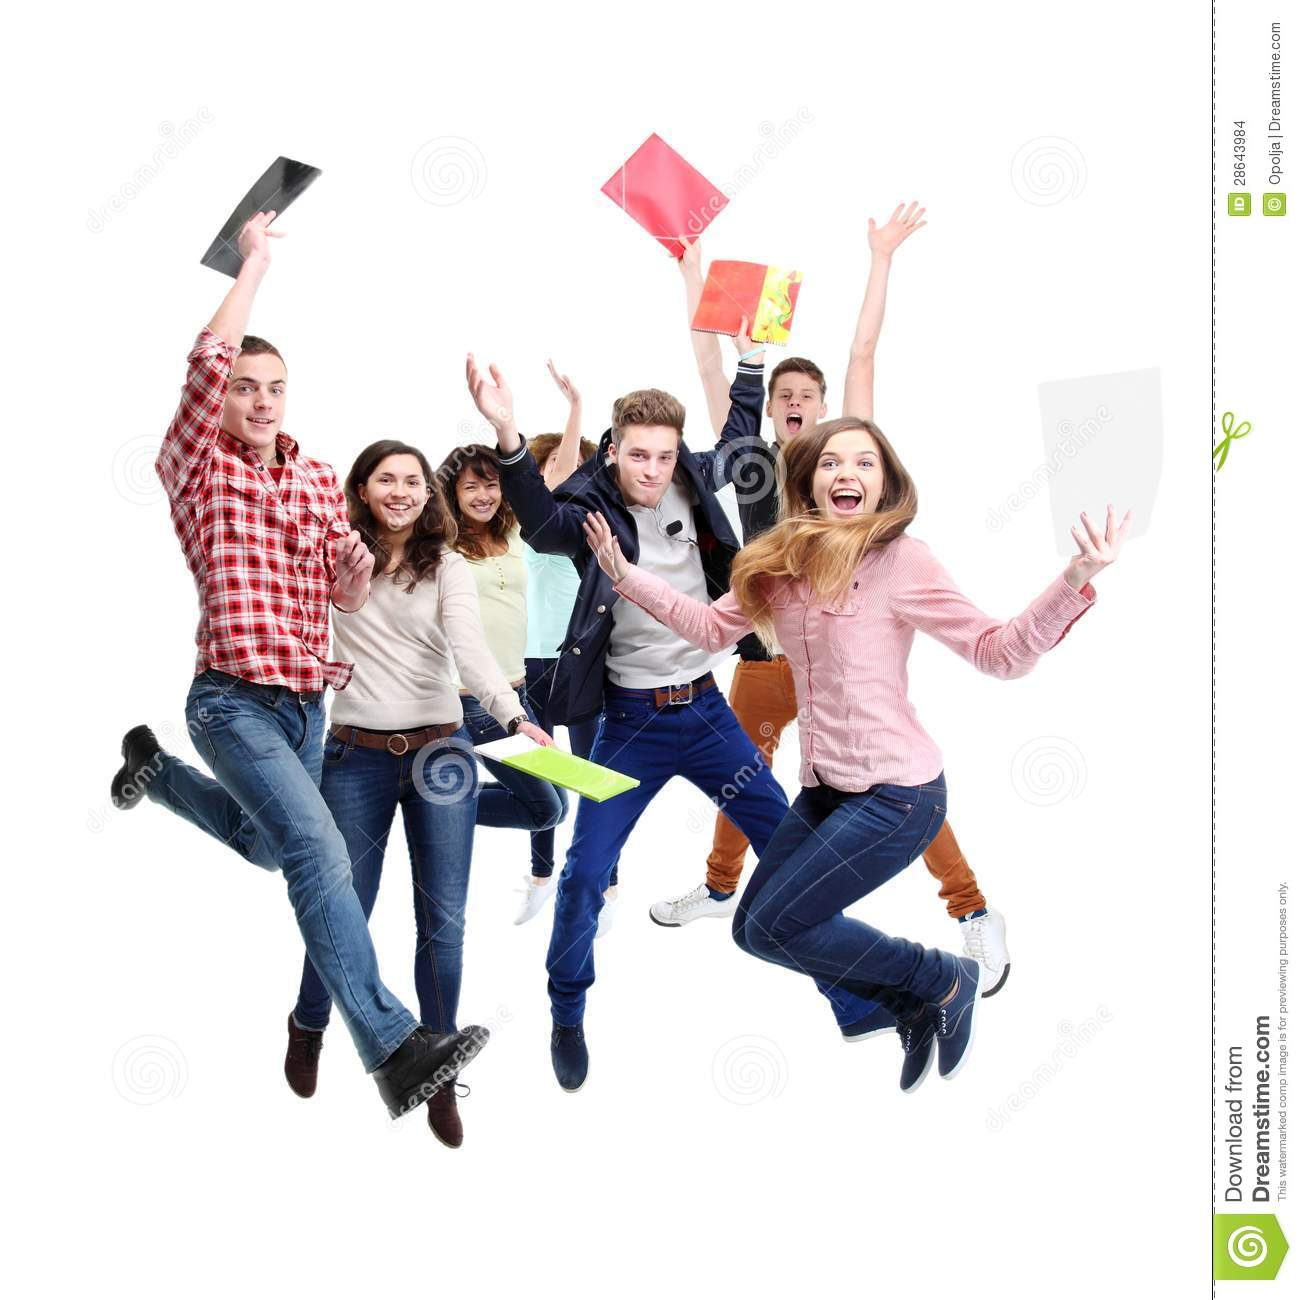 group-happy-young-people-jumping-28643984.jpg